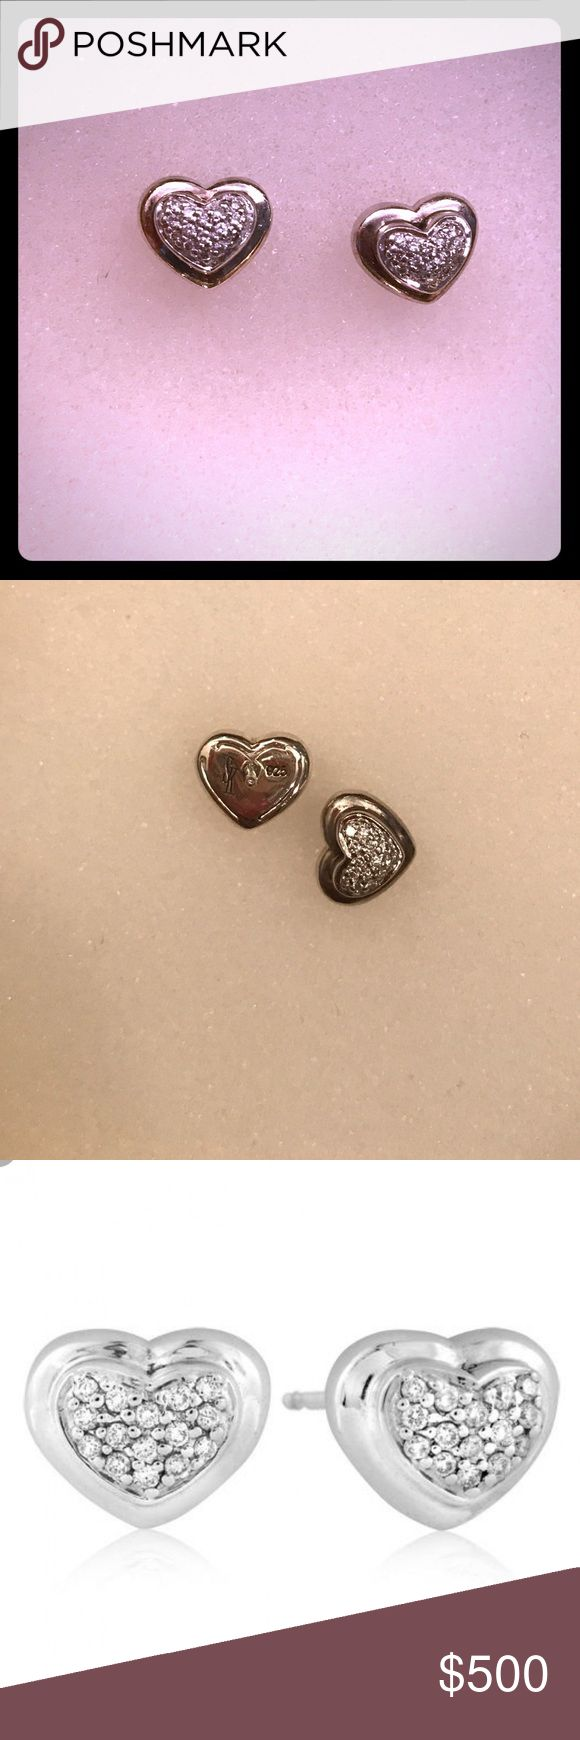 Scott Kay Diamond Heart Earrings Scott Kay sterling silver heart stud earrings mounted with round brilliant-cut natural diamonds. Earrings have a width of 1.0 cm and a height of 0.9 cm | 0.24 carat weight | great condition | worn twice | I wear more gold or I would keep these | great size Scott Kay  Jewelry Earrings